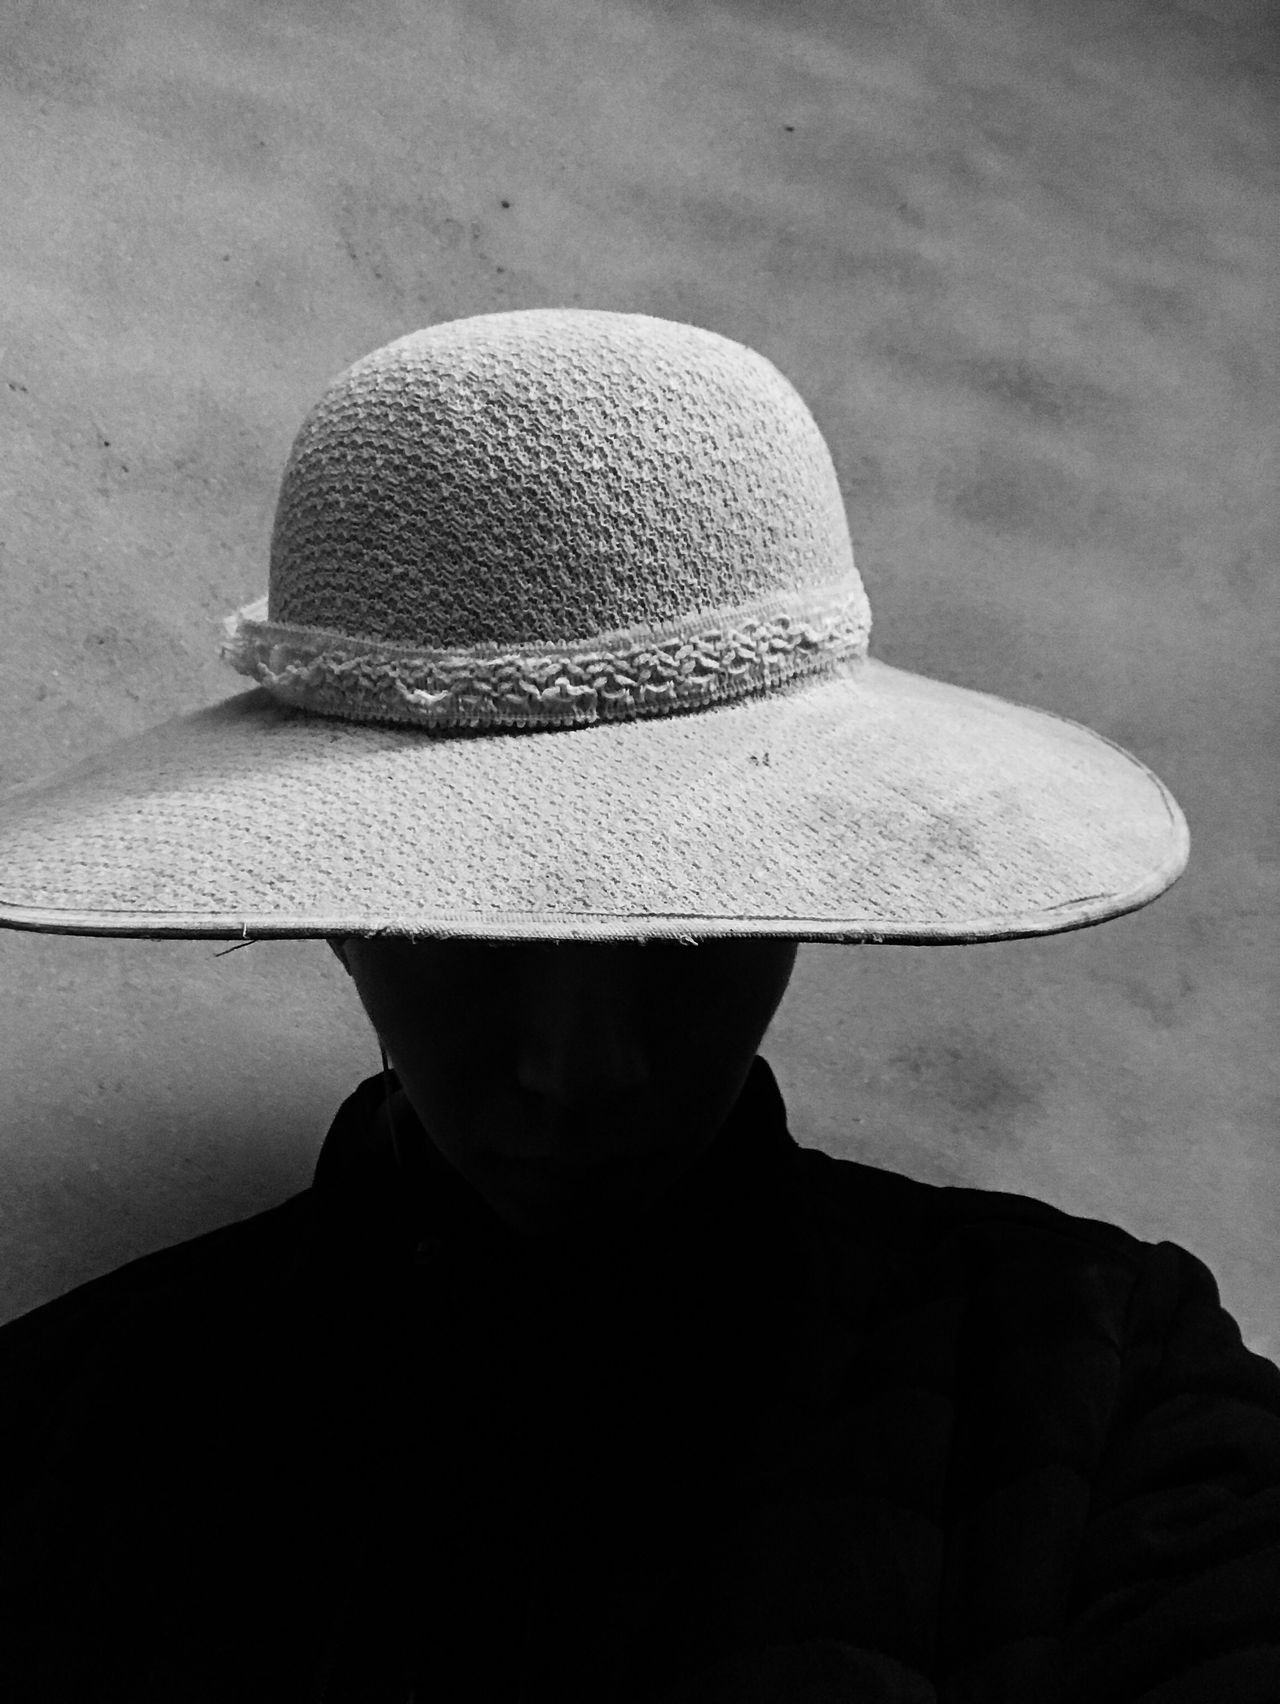 Hat One Person Men Lifestyles Headshot Sun Hat Real People Human Body Part Outdoors Headwear Day One Man Only Only Men People Adult Adults Only Selfie ✌ Spooky Old Timer